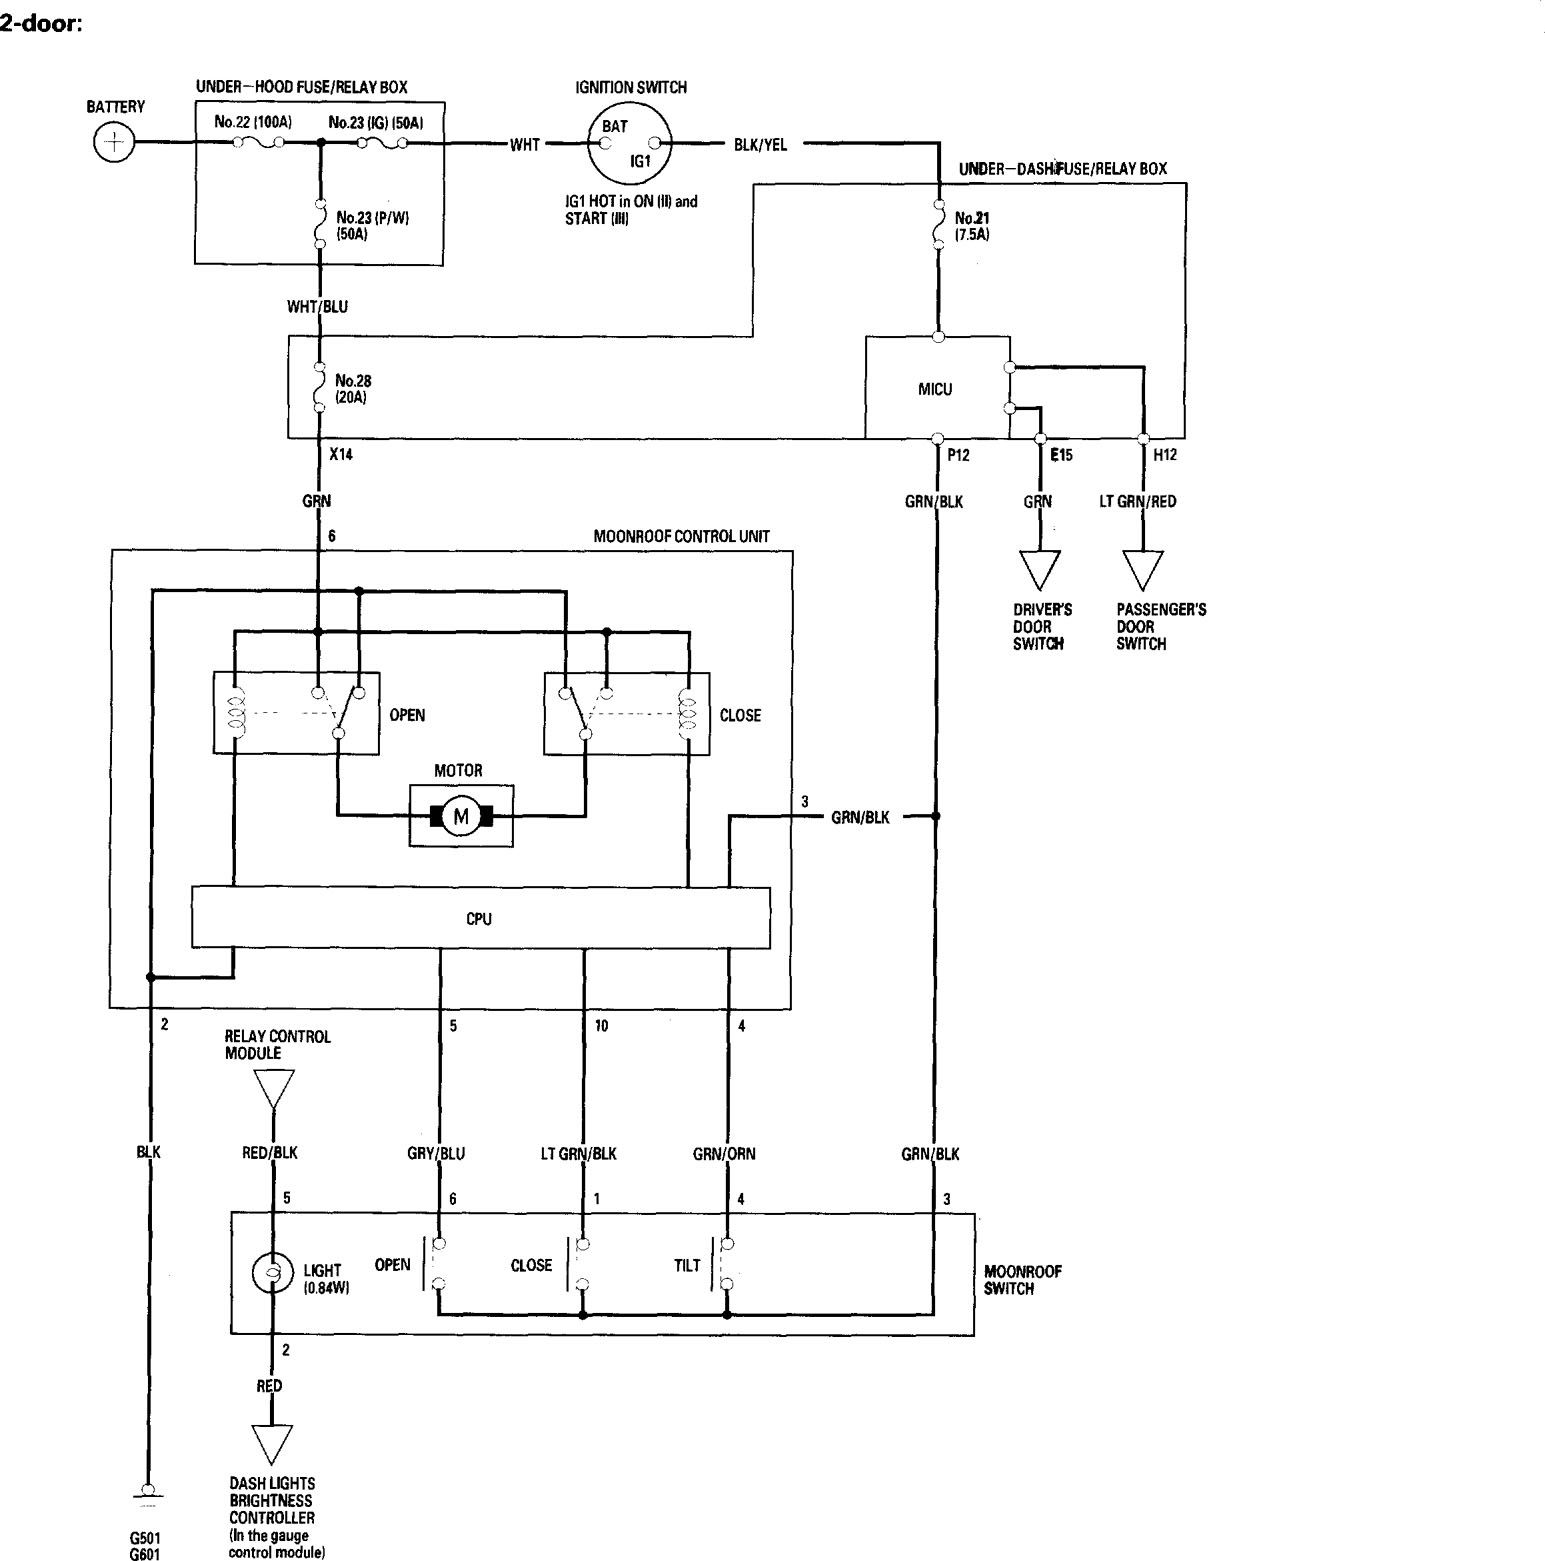 Honda Accord 2006 Wiring Diagrams Sunroof Carknowledge Info